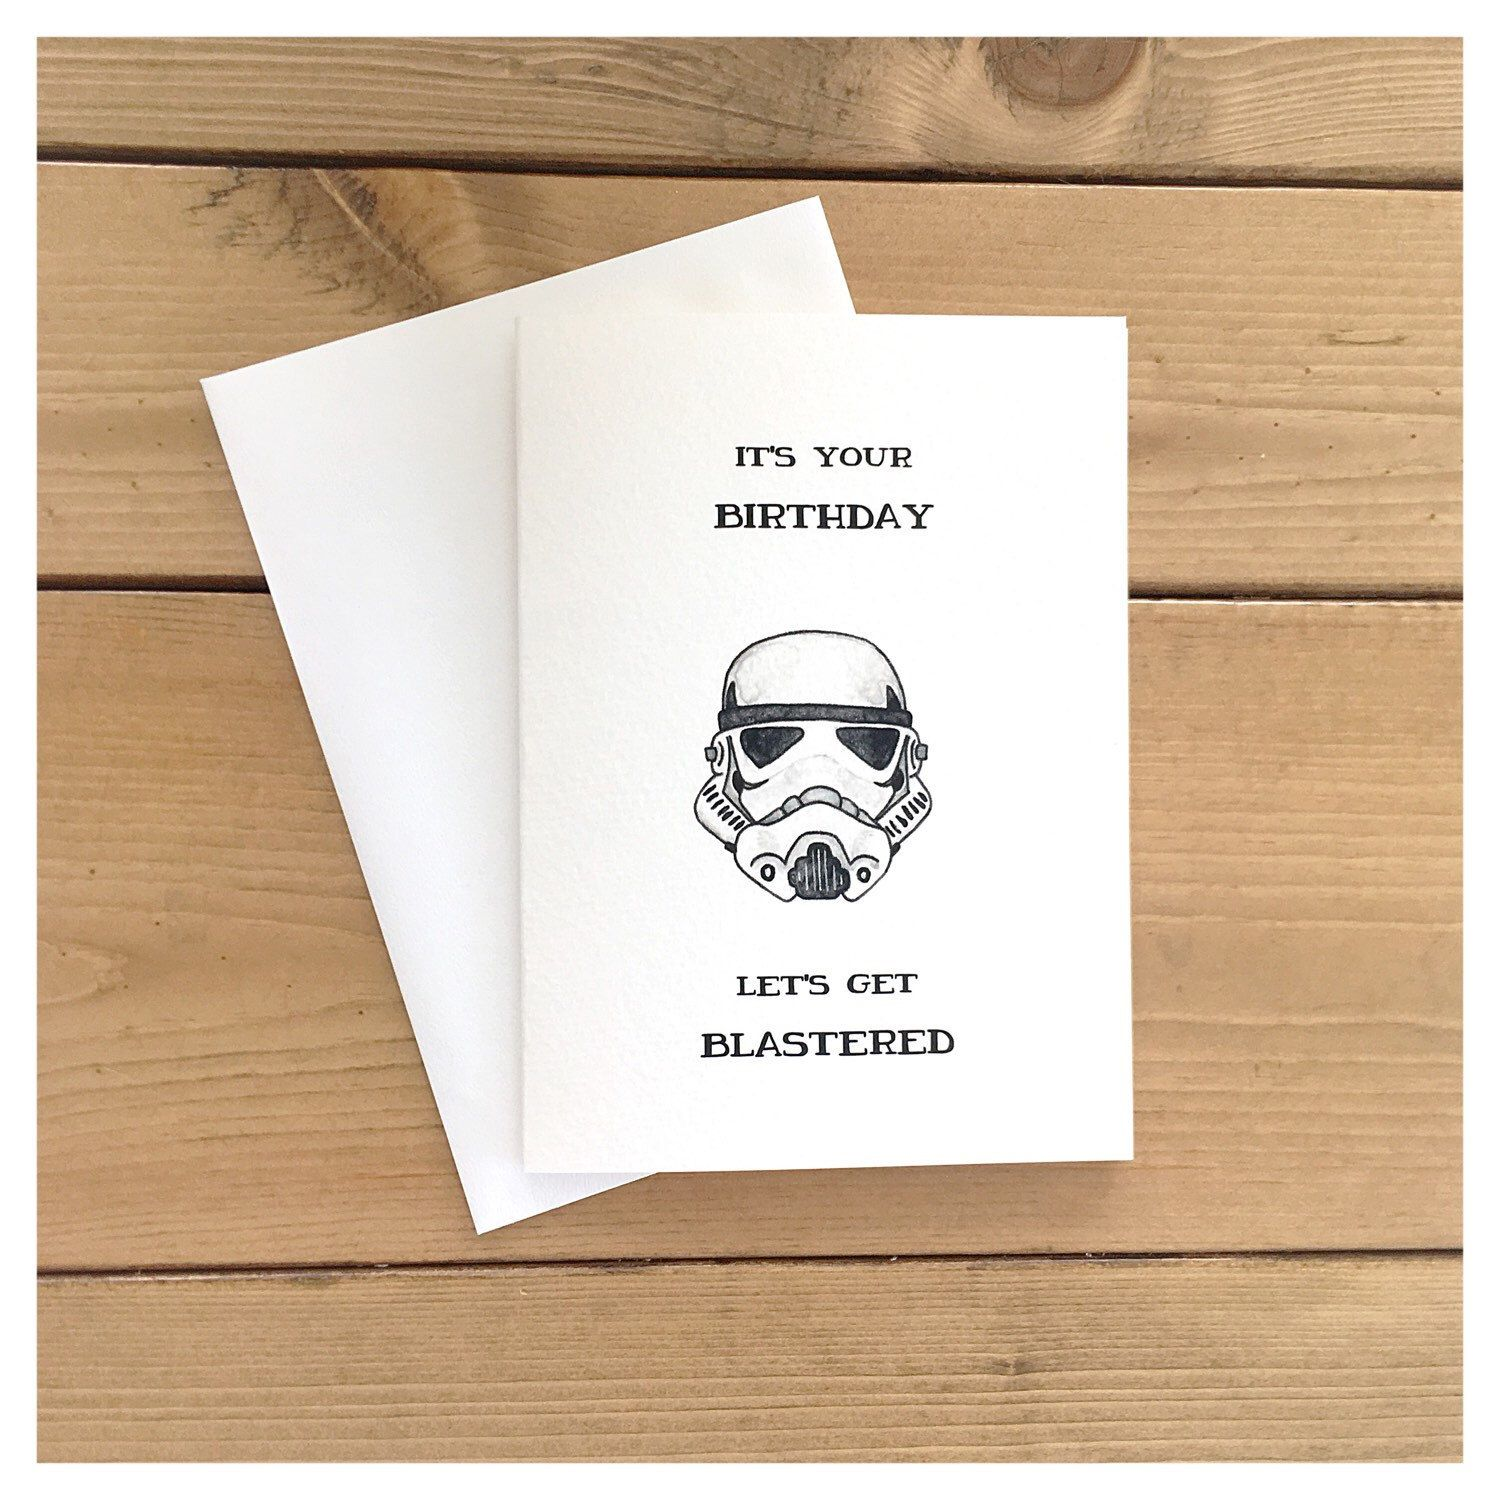 N E W Stormtrooper Greeting Card For All Your Star Wars Loving Drinking Buddies Diy Birthday Gifts For Dad Cards Etsy Mall